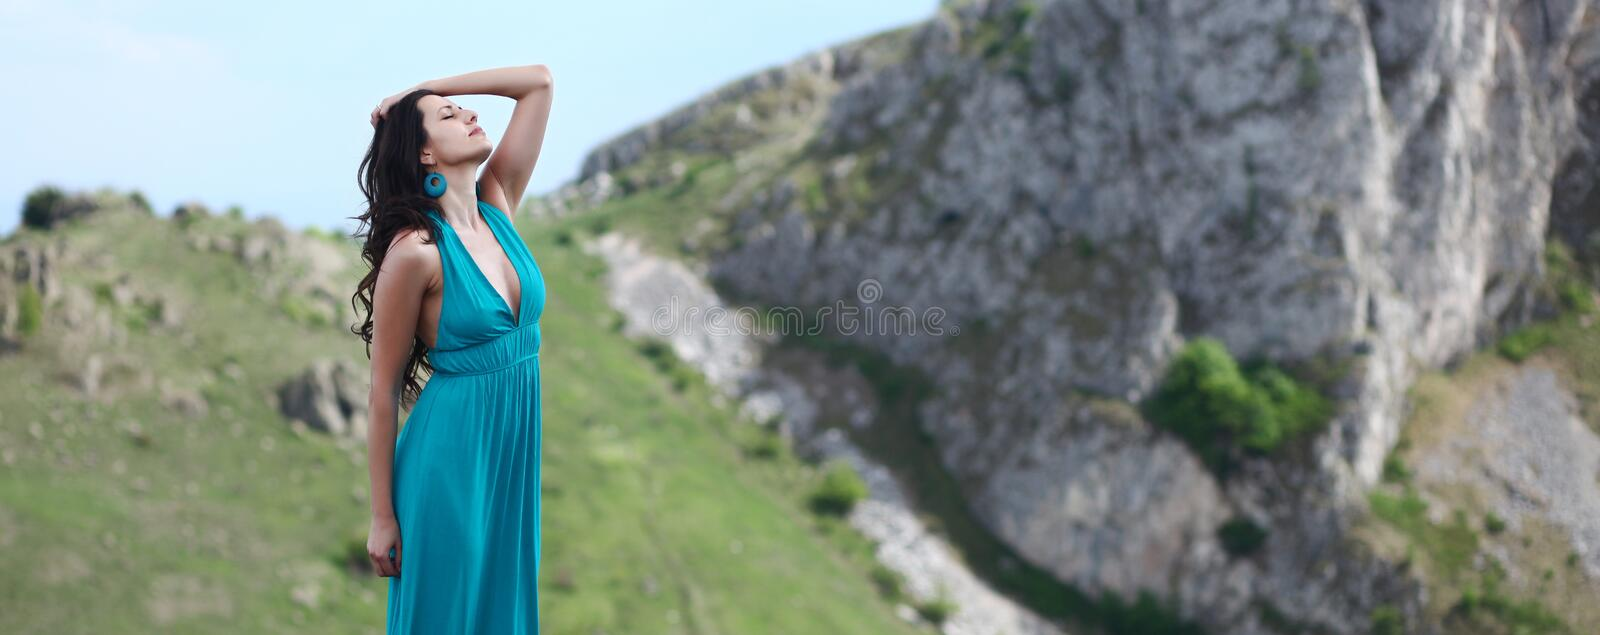 Woman with rocky mountain cliff in background royalty free stock image